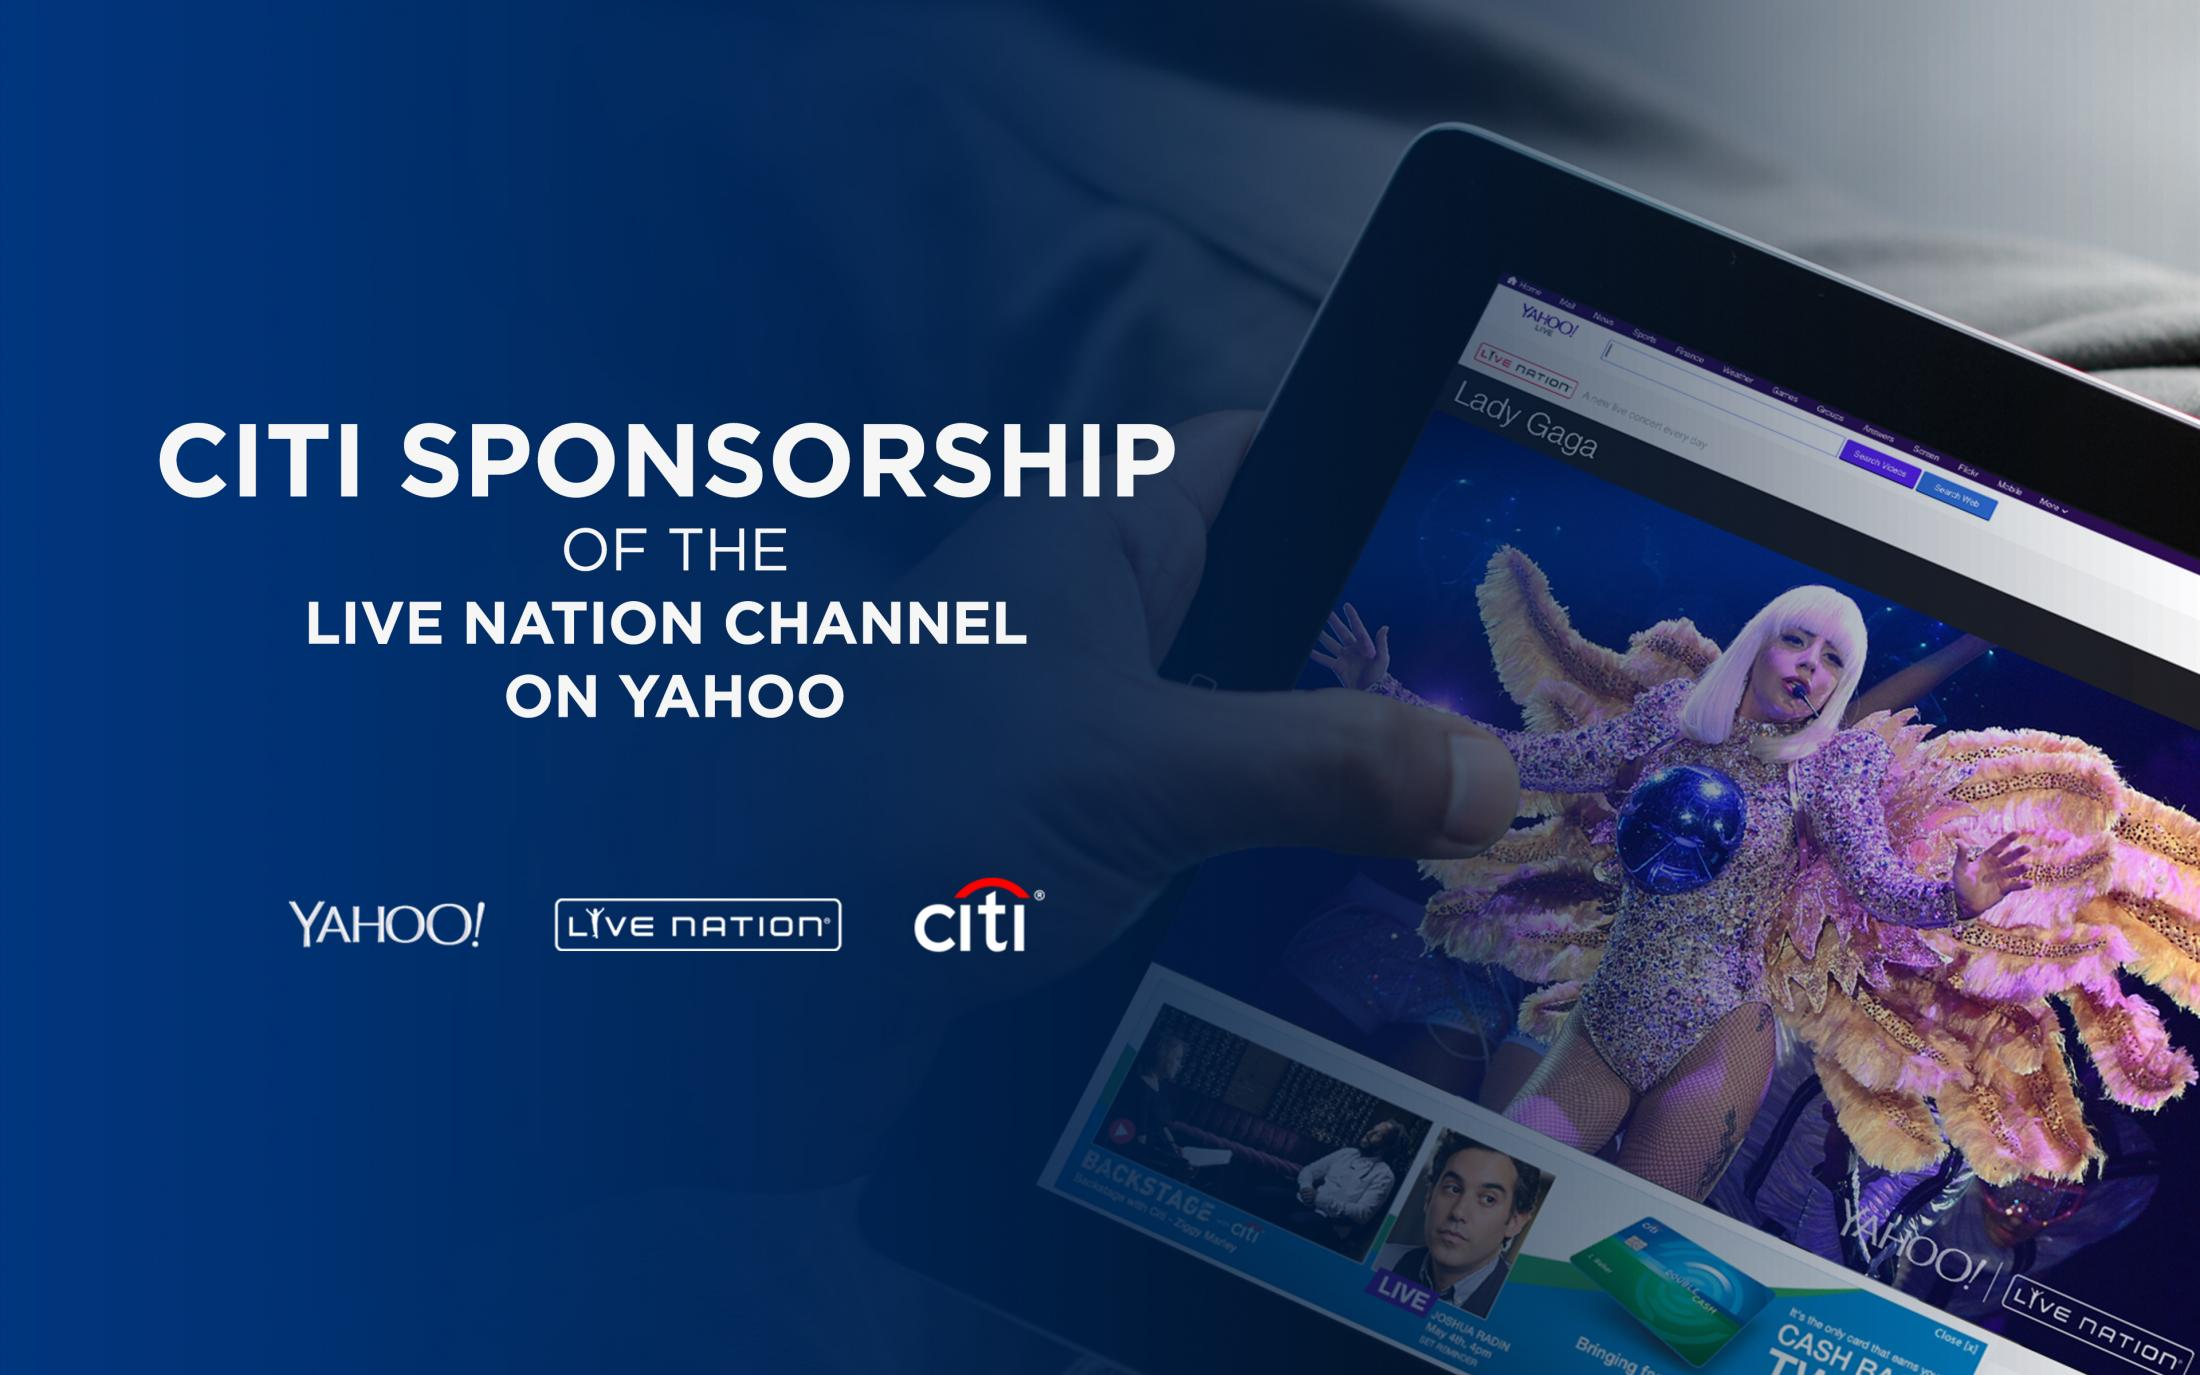 Thumbnail for Citi Sponsorship of Live Nation Channel on Yahoo